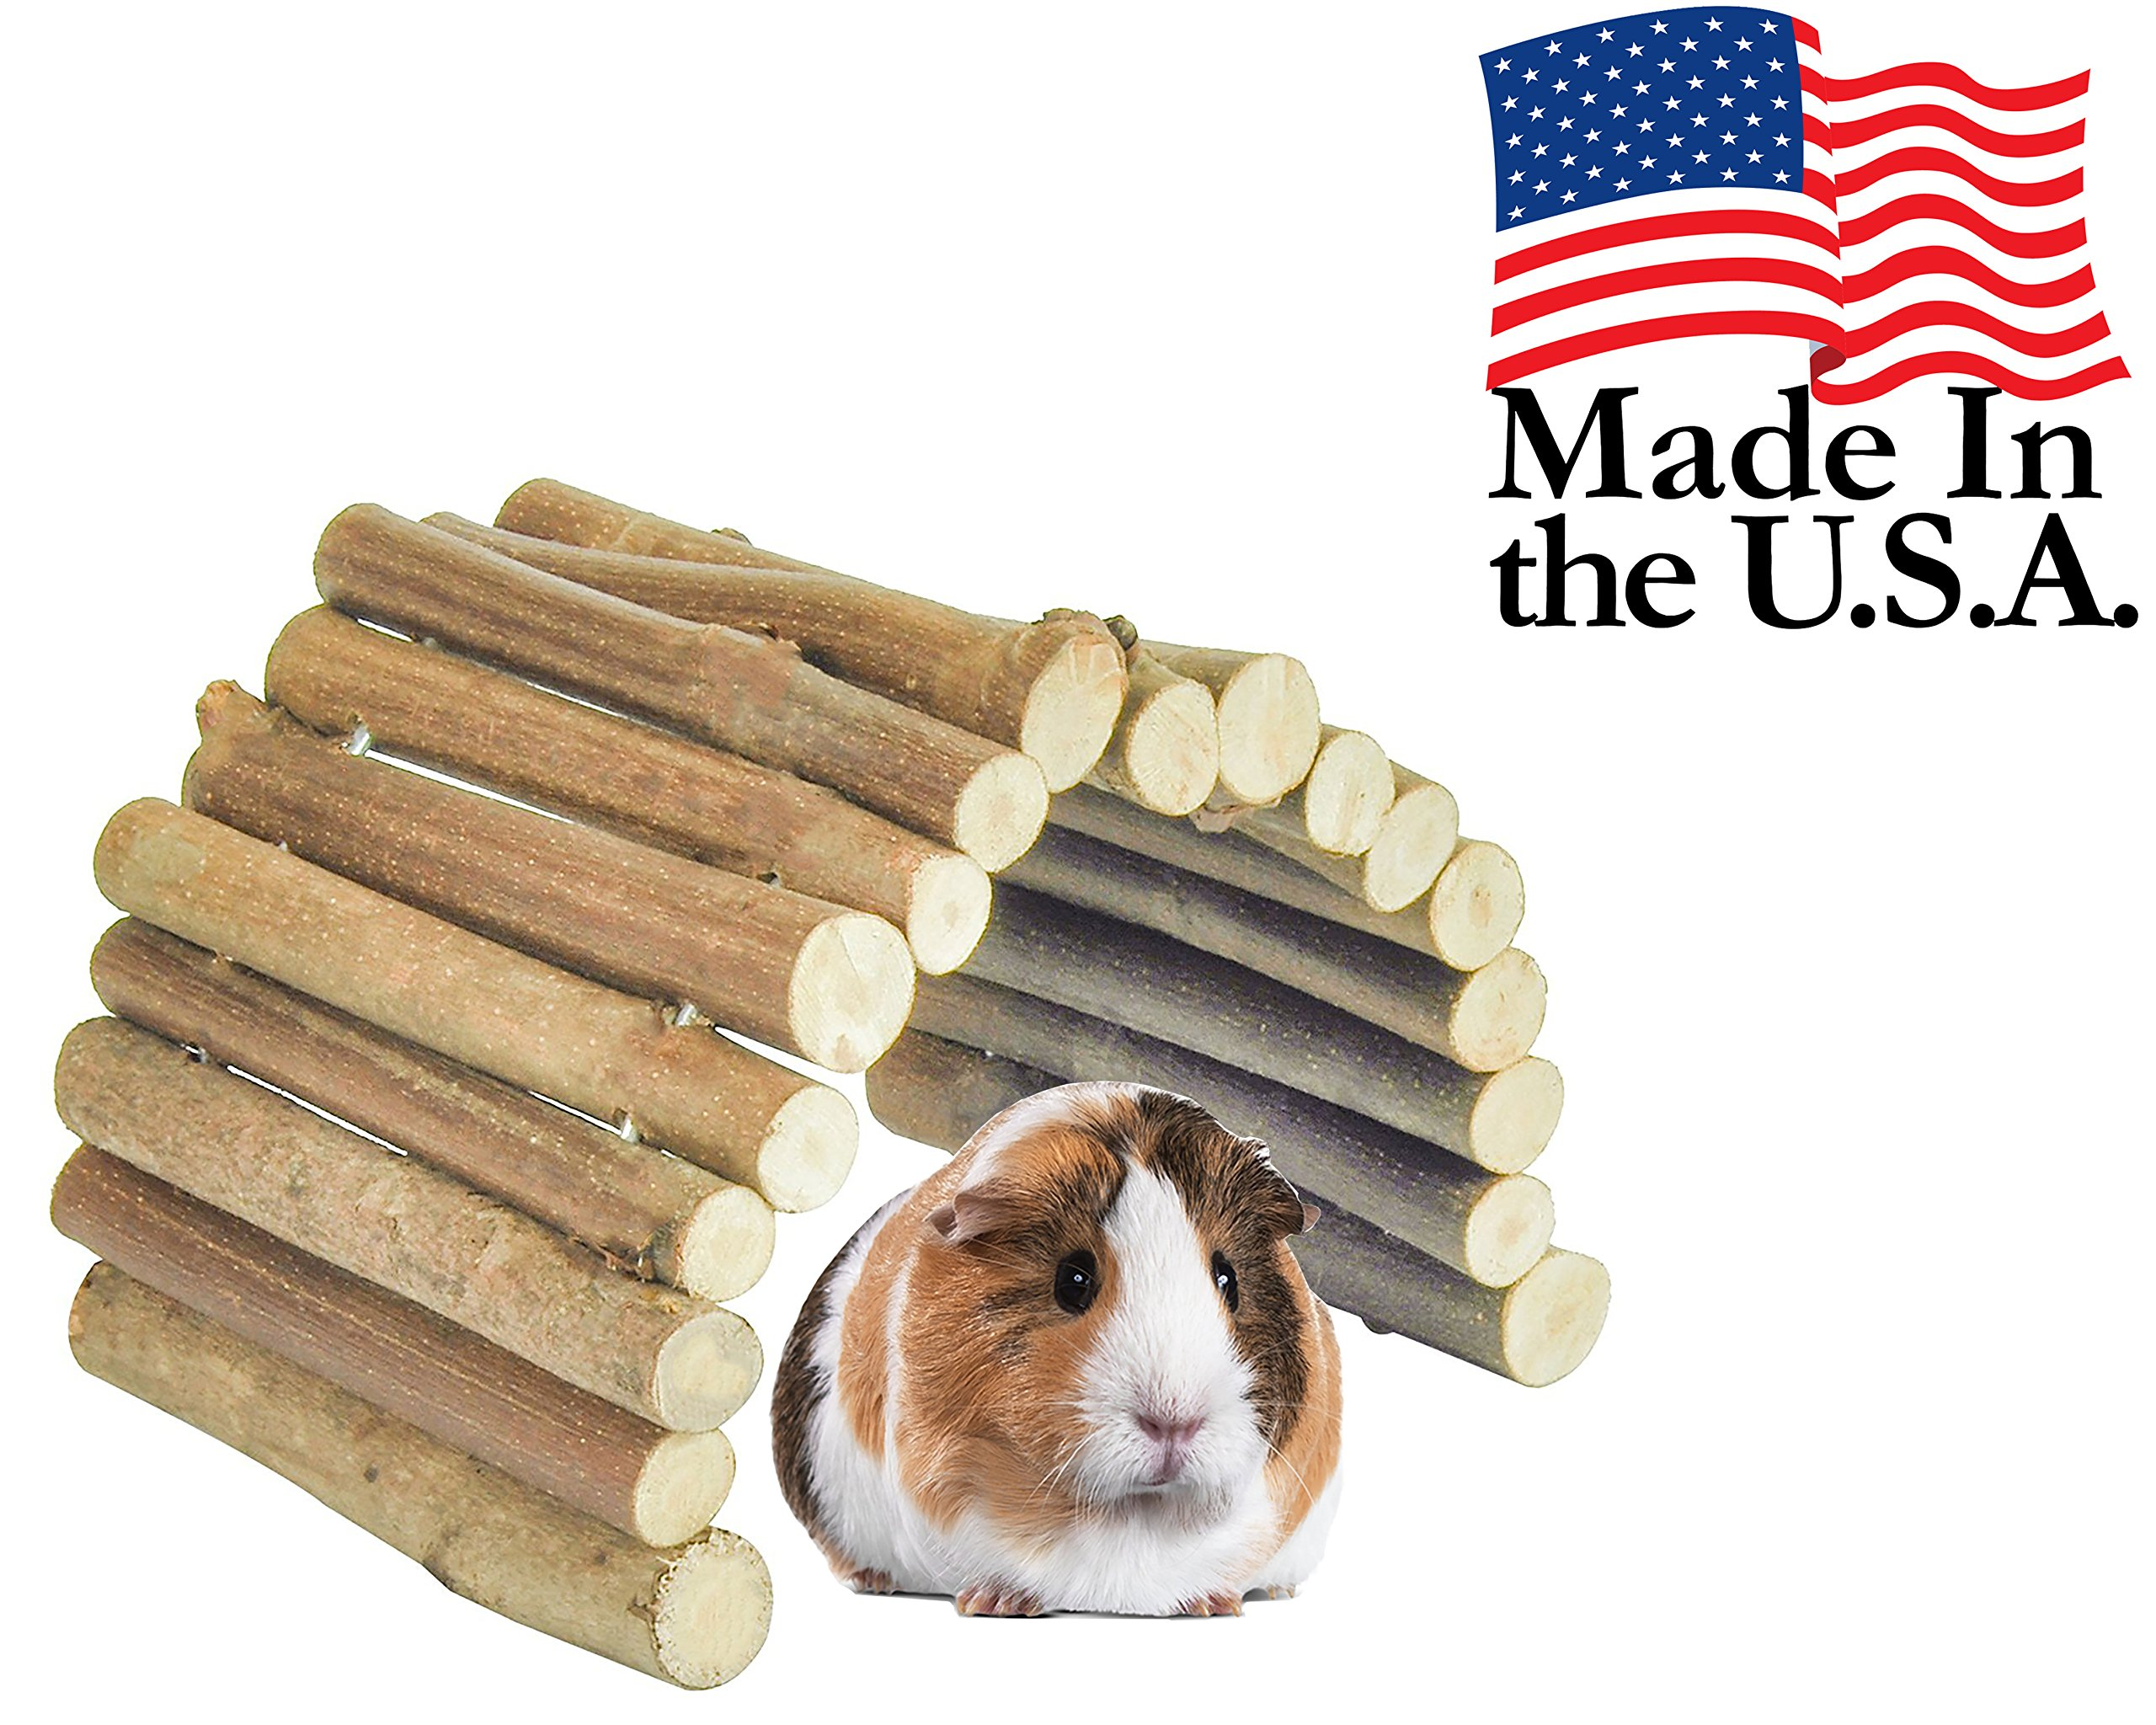 Flexible All Natural Wood Bridge - 14 x 9 Inches - Extra Large - Tunnel and Hideout for Guinea Pigs, Ferrets, Chinchillas and Other Small Animals